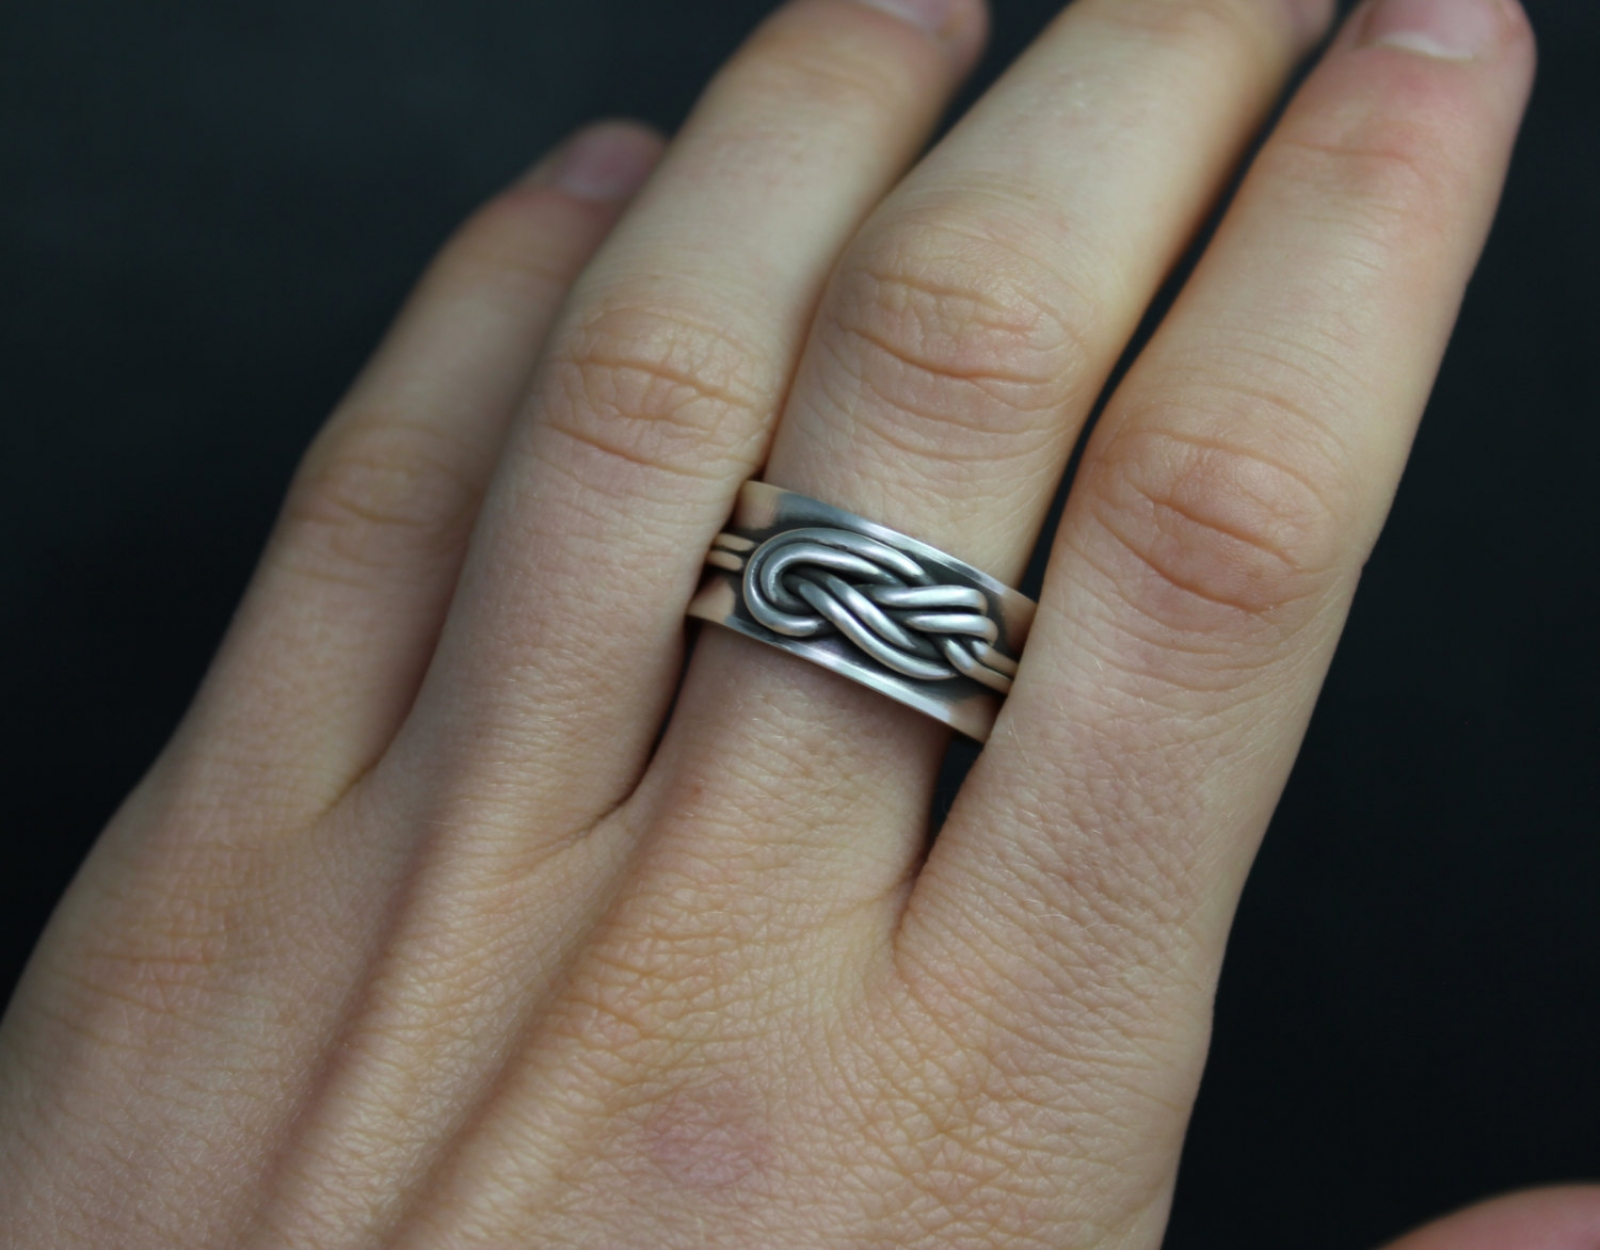 Double Infinity Knot Ring Figure Eight Knot Ring Love Knot Ring Sterling Silver 10mm Wide Band Climber S Knot Ready To Ship Size 9 Theresa Pytell Jewelry Design